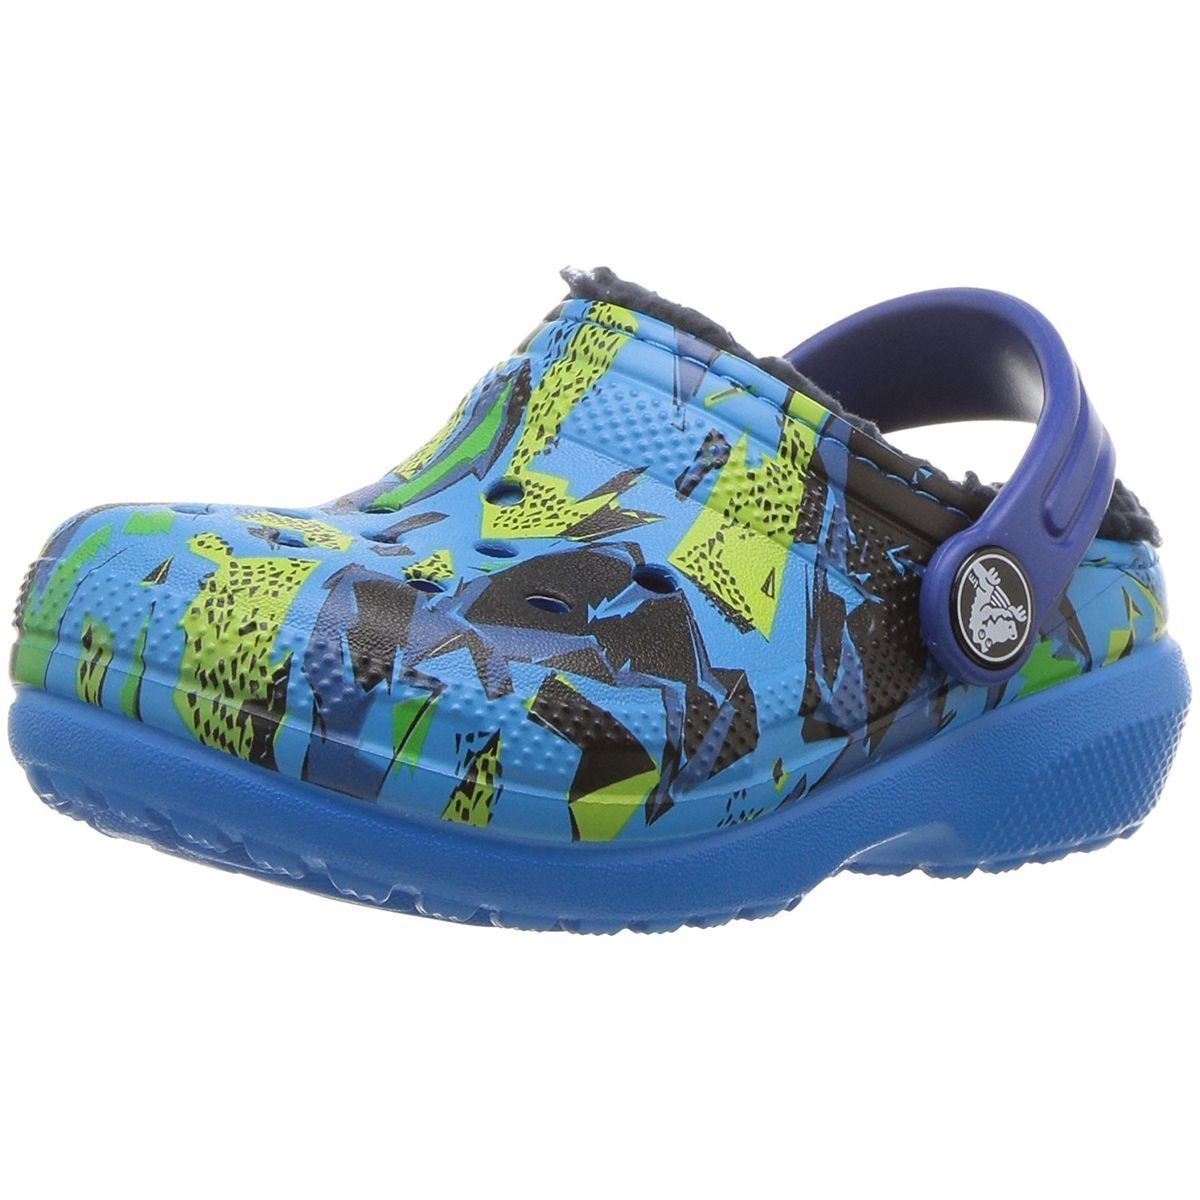 Crocs fille kids classic fuzz lined graphic clog bleu1595001_2